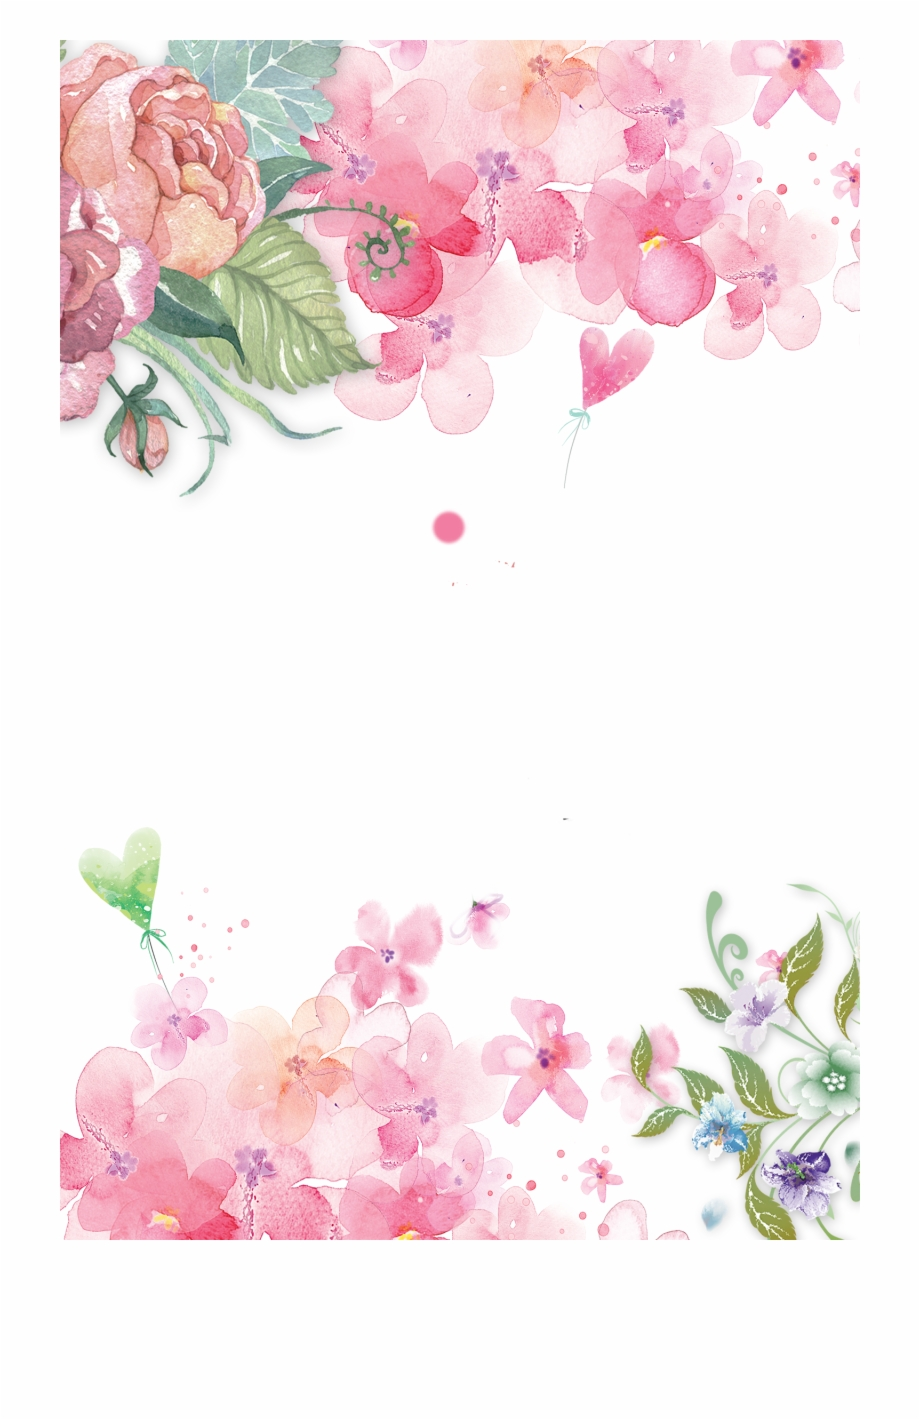 Background Pictures Flowers Png - Flowers Png Vectors Psd And Clipart For - Pink Flower Watercolor ...